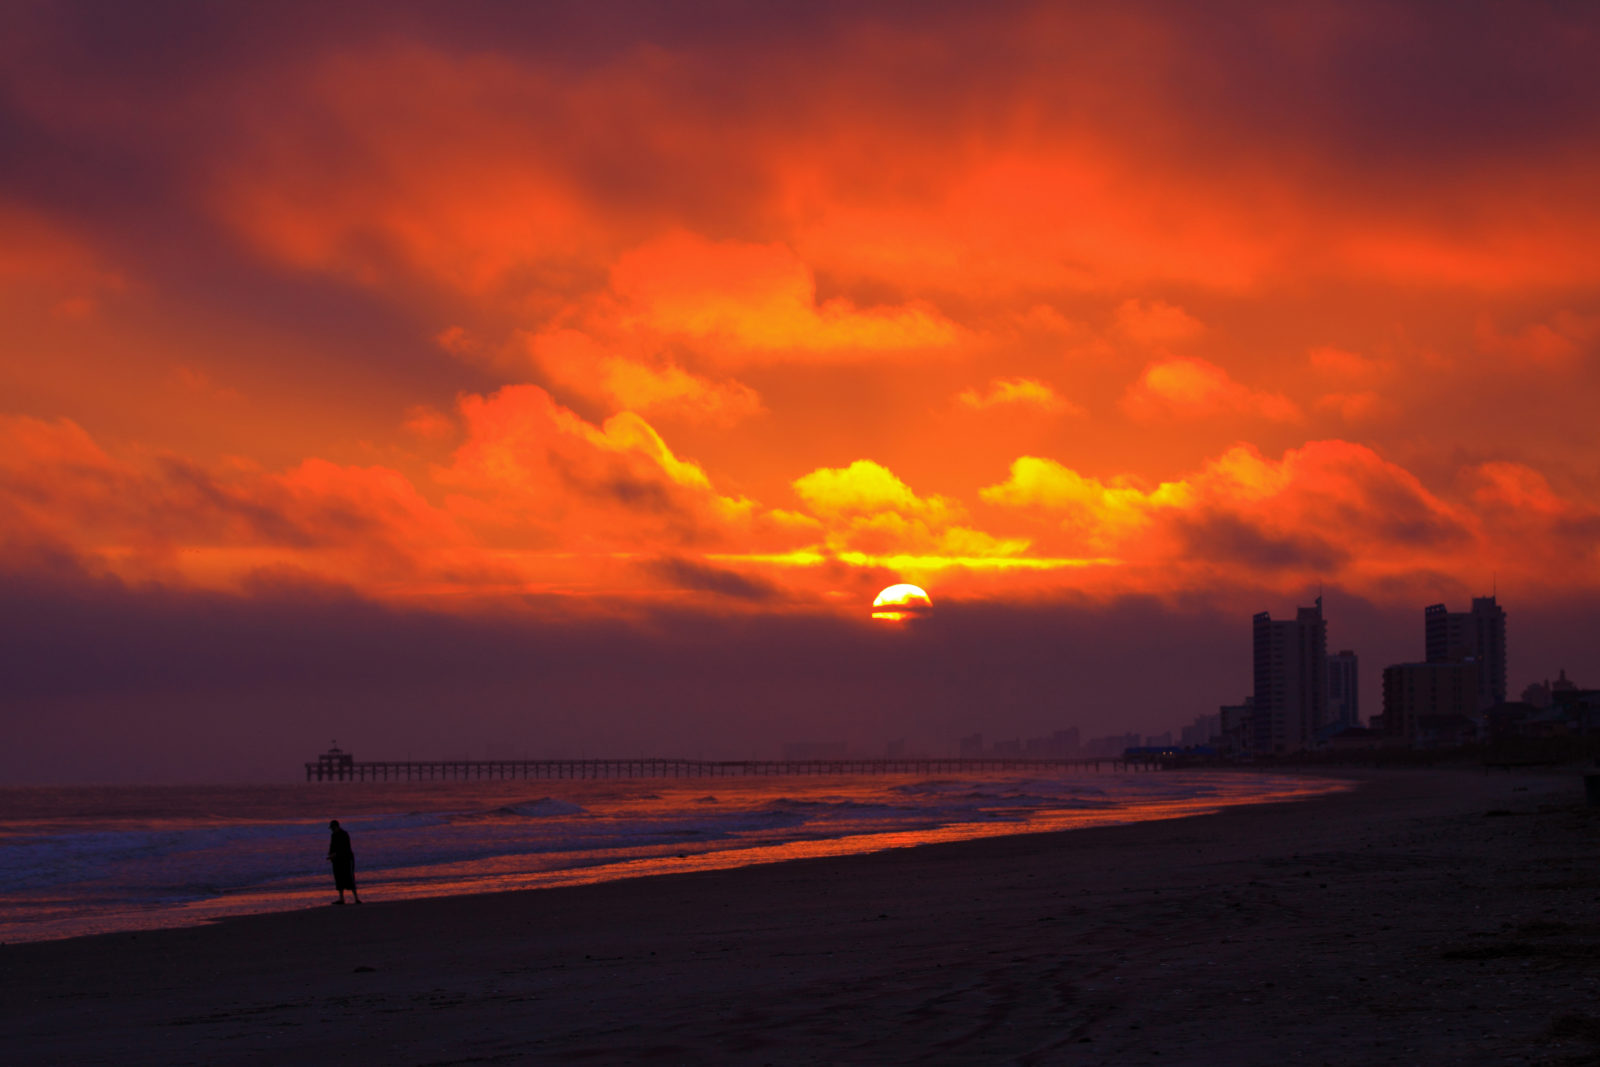 Fiery Sunset on a Cloudy Afternoon